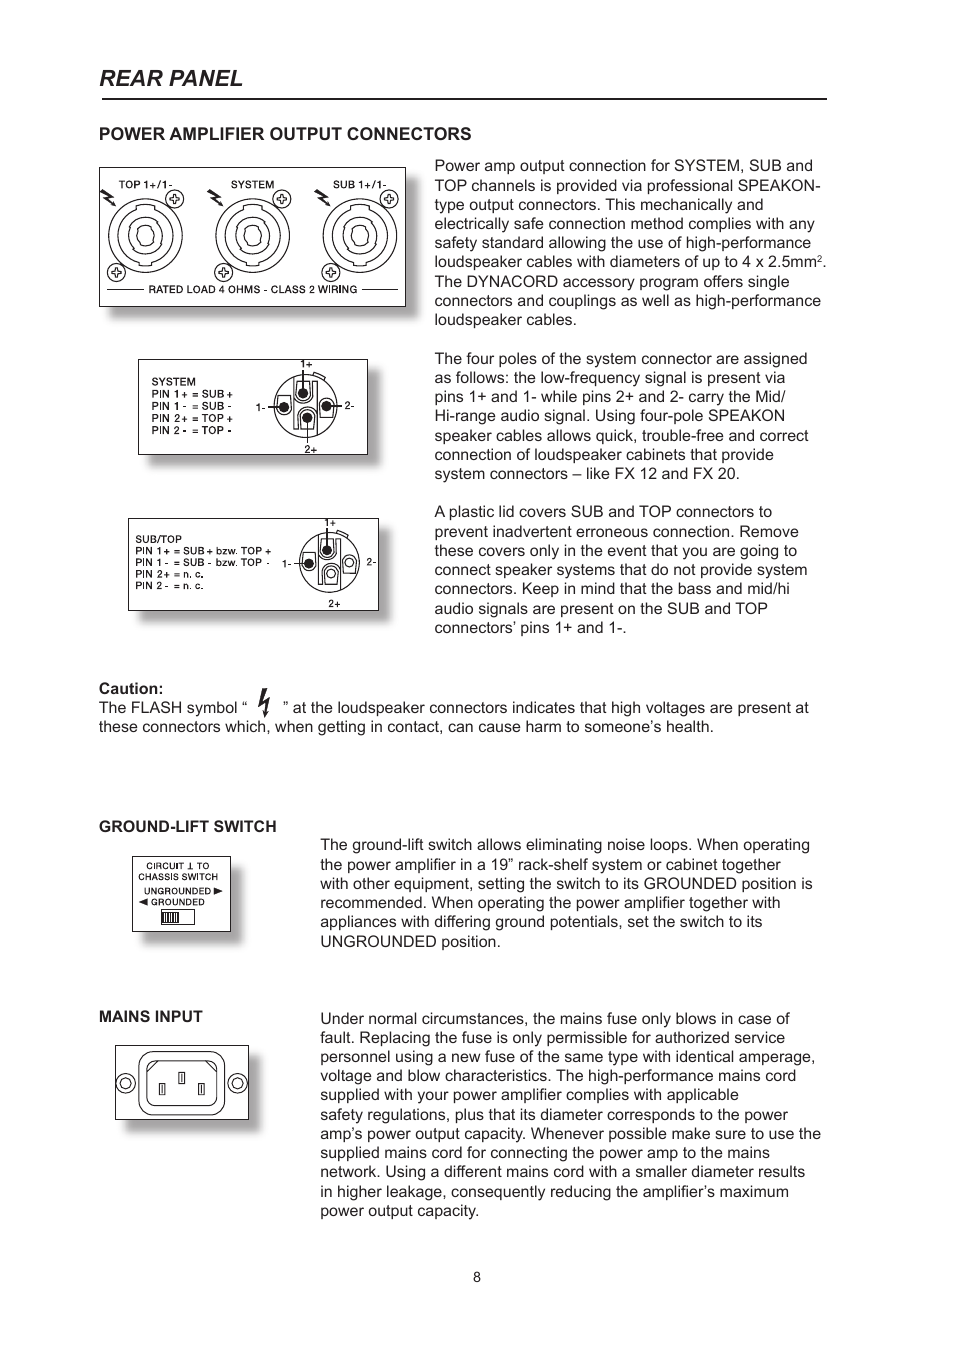 Rear panel | Dynacord System Power Amp Xa 4000 User Manual | Page 8 / 48